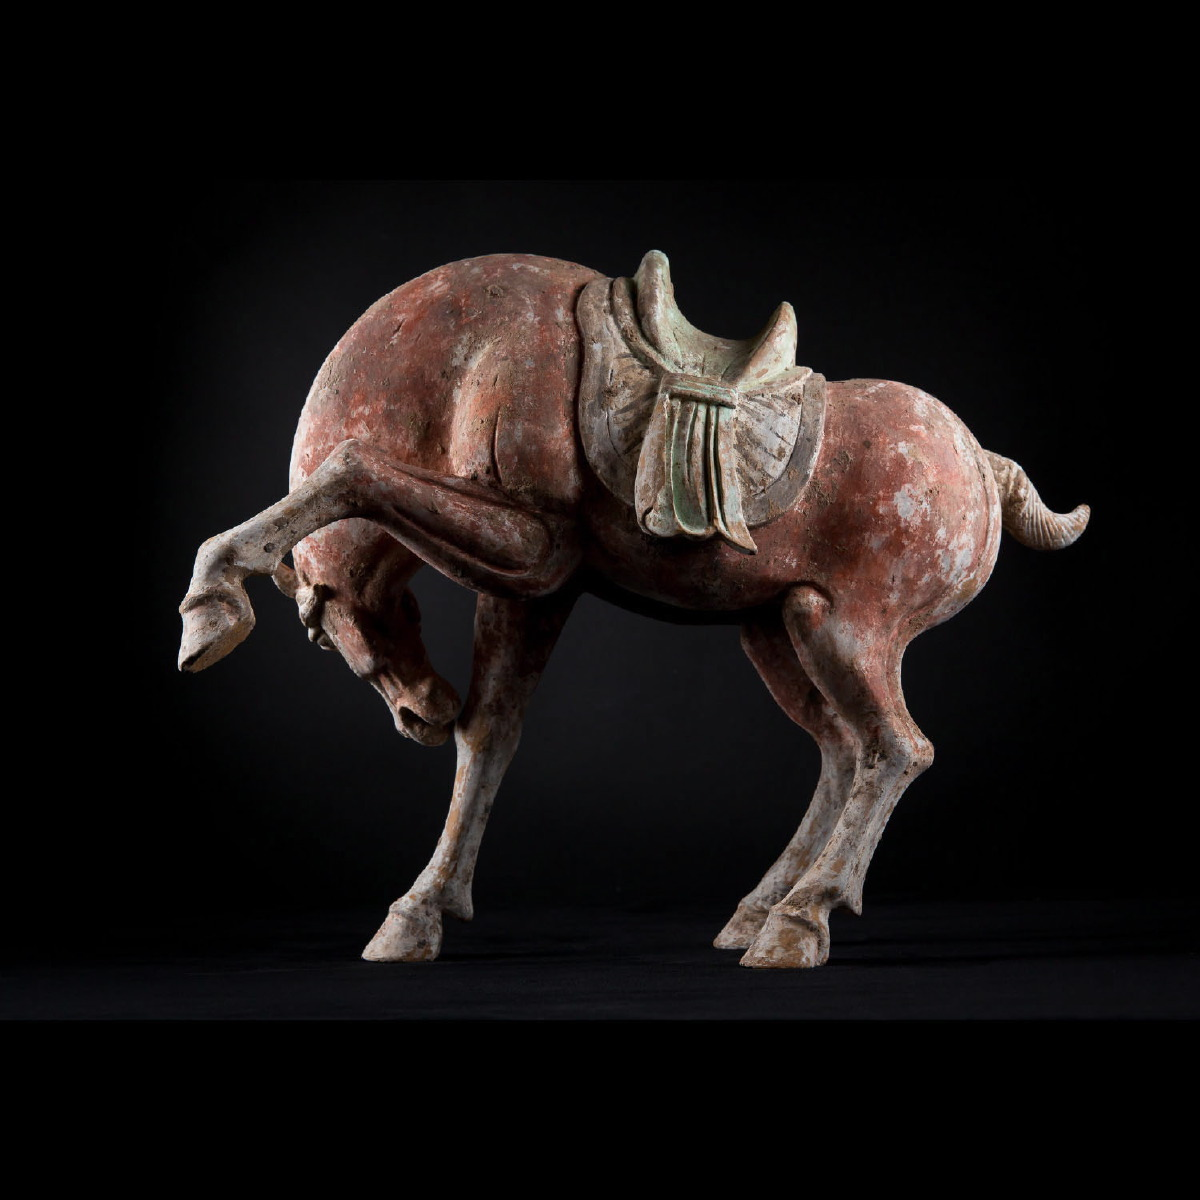 Photo of bucking-horse-tang-dynasty-ancient-art-specialist-oriental-and-asiatic-artefacts-statues-galerie-golconda